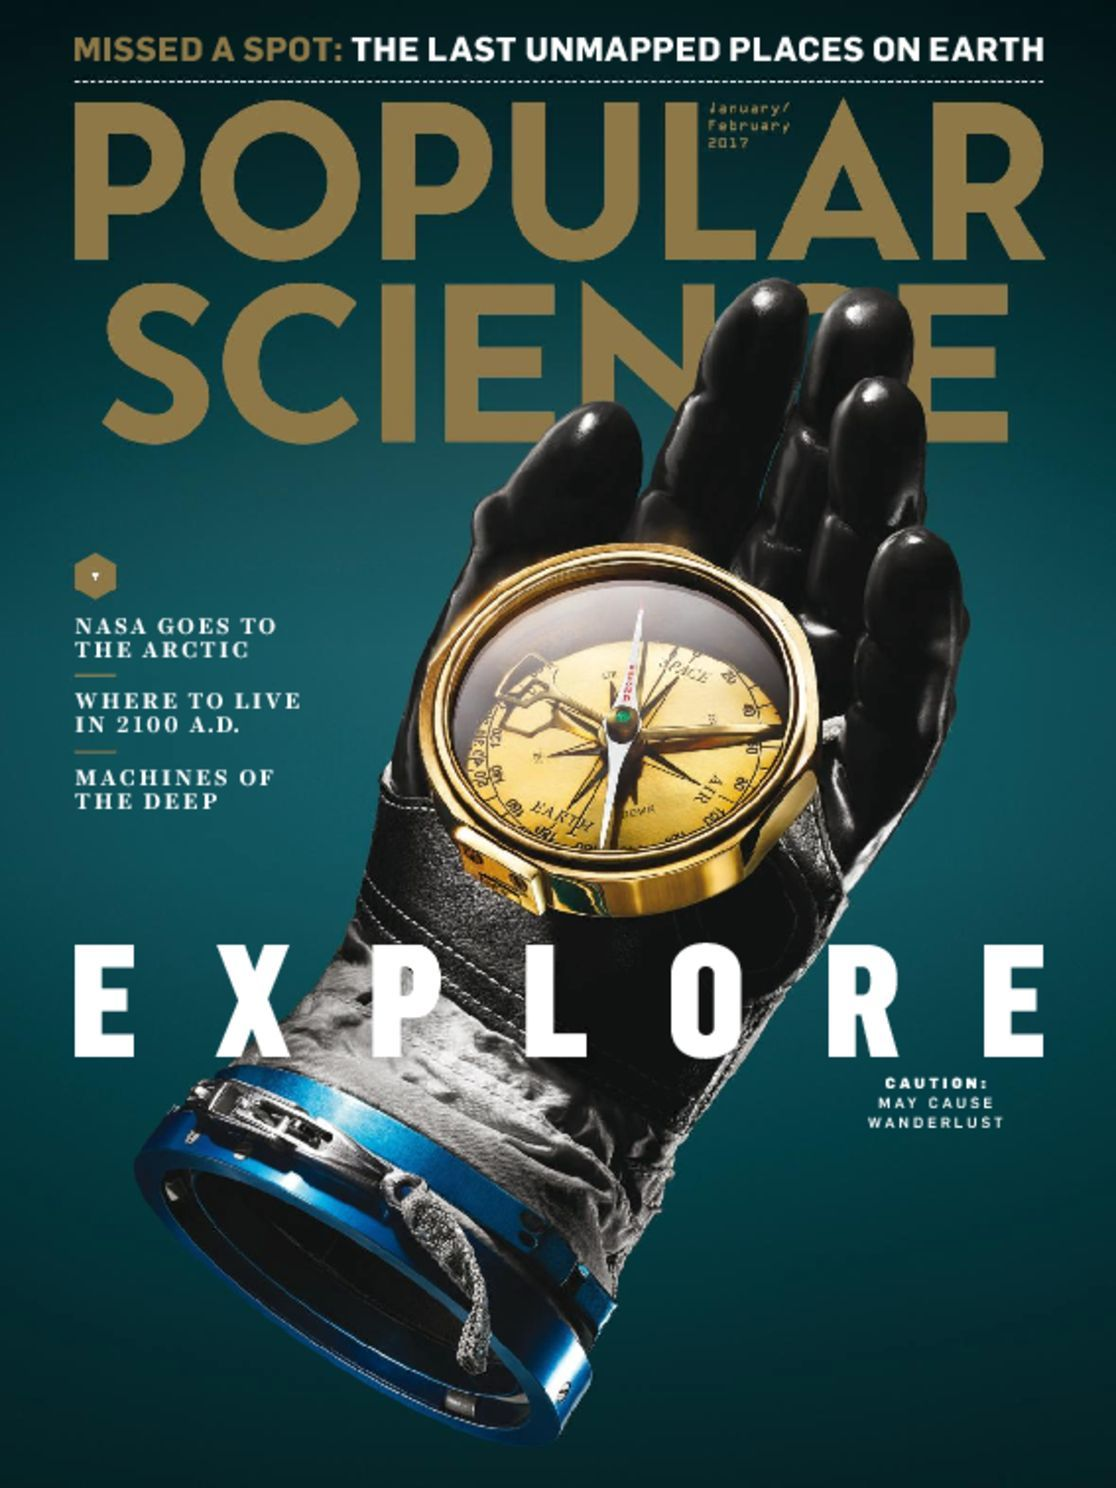 science popular magazine subscription penthouse issue covers subscriptions issues subscribe explorer space january sign discountmags future voorhes kmart date extra